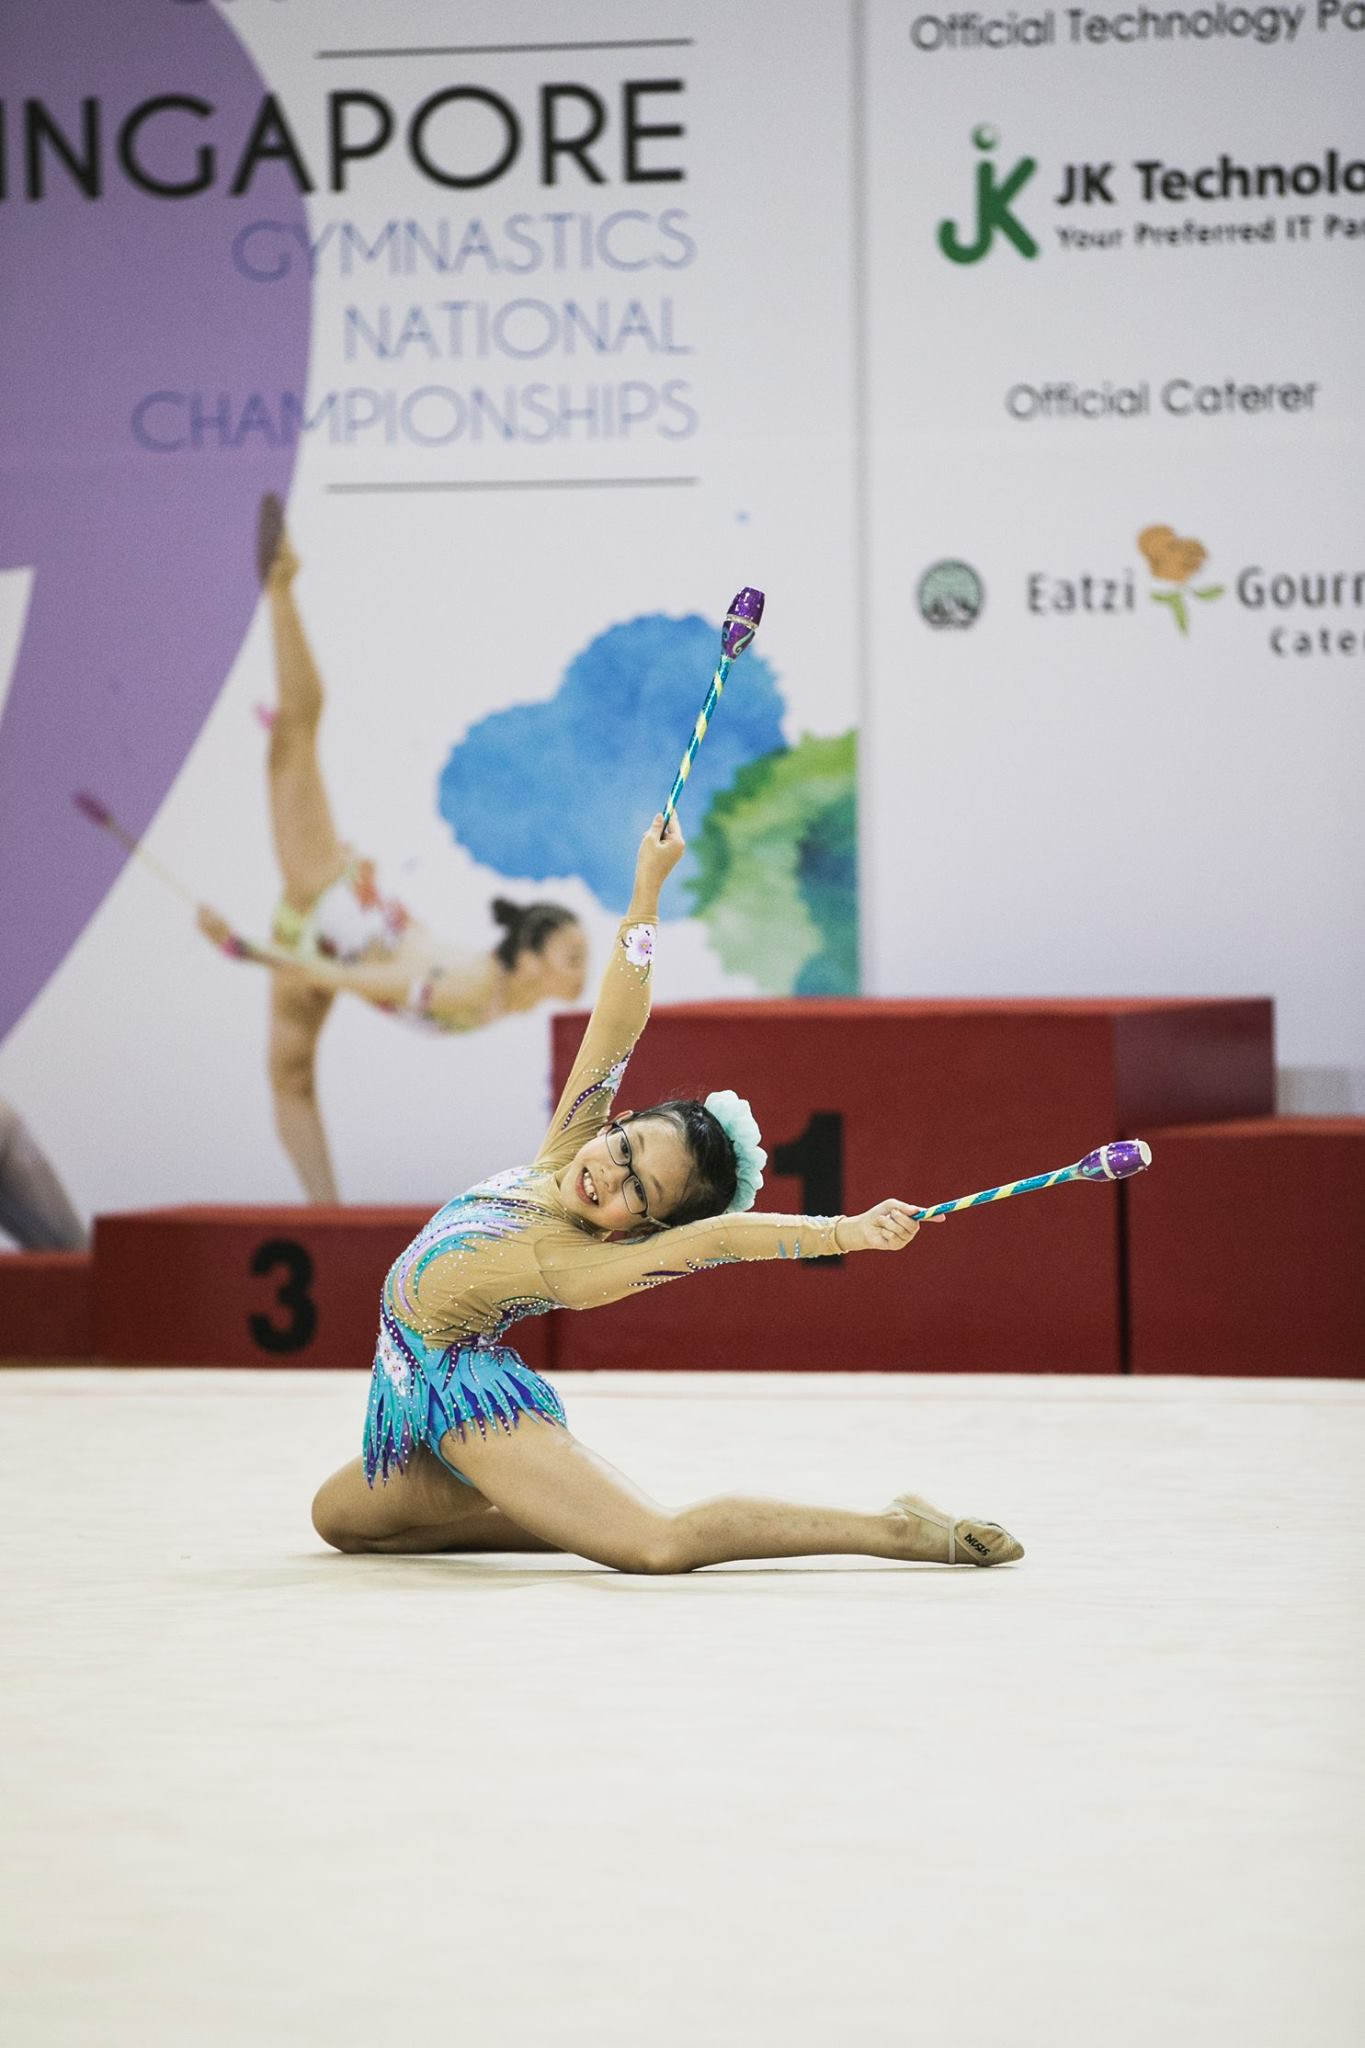 9th Singapore Gymnastics National Championships 2017 59